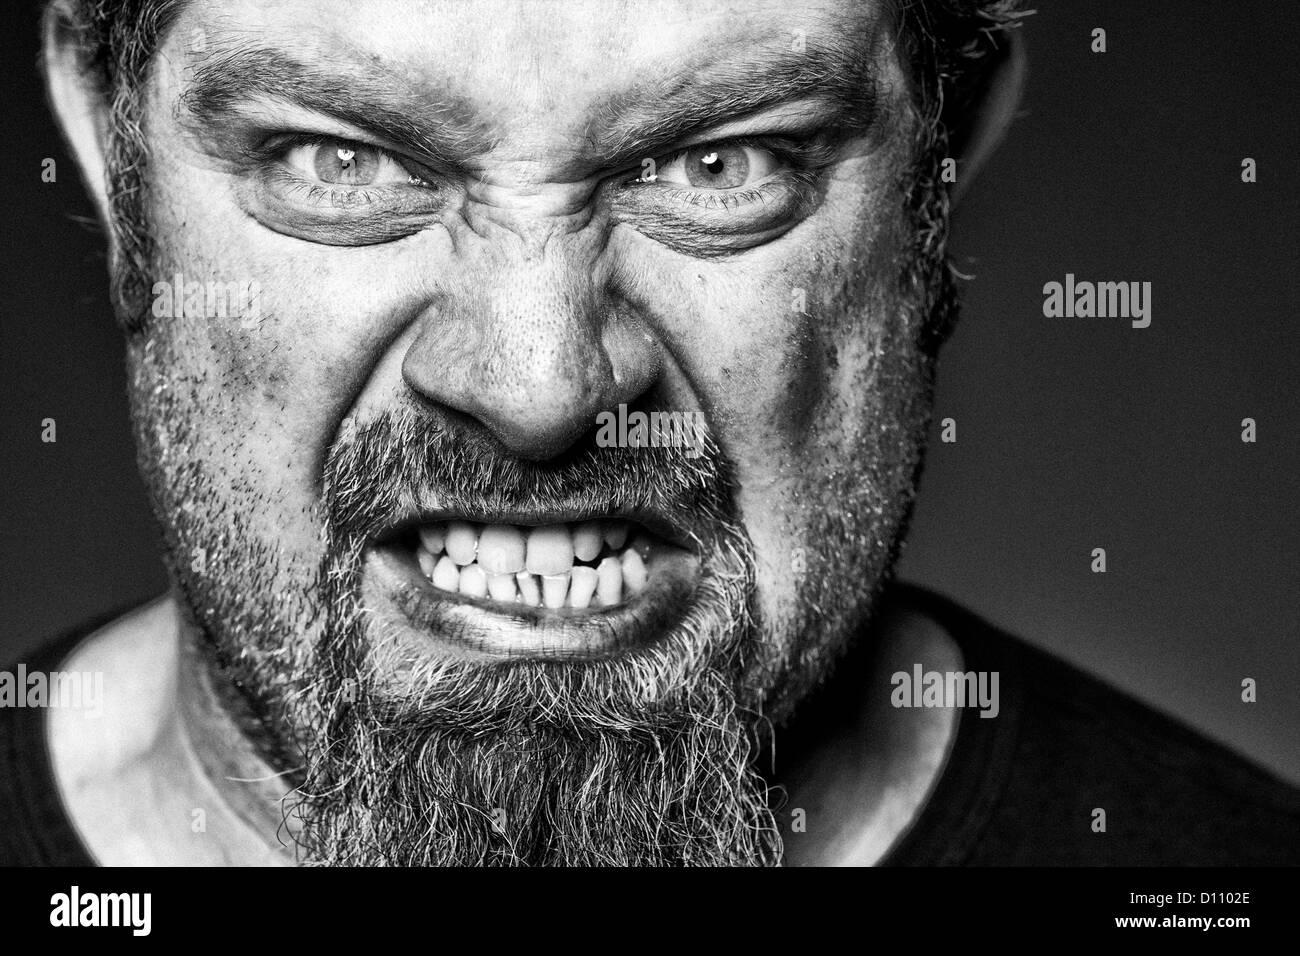 Angry man with sneer on his face Stock Photo, Royalty Free ...